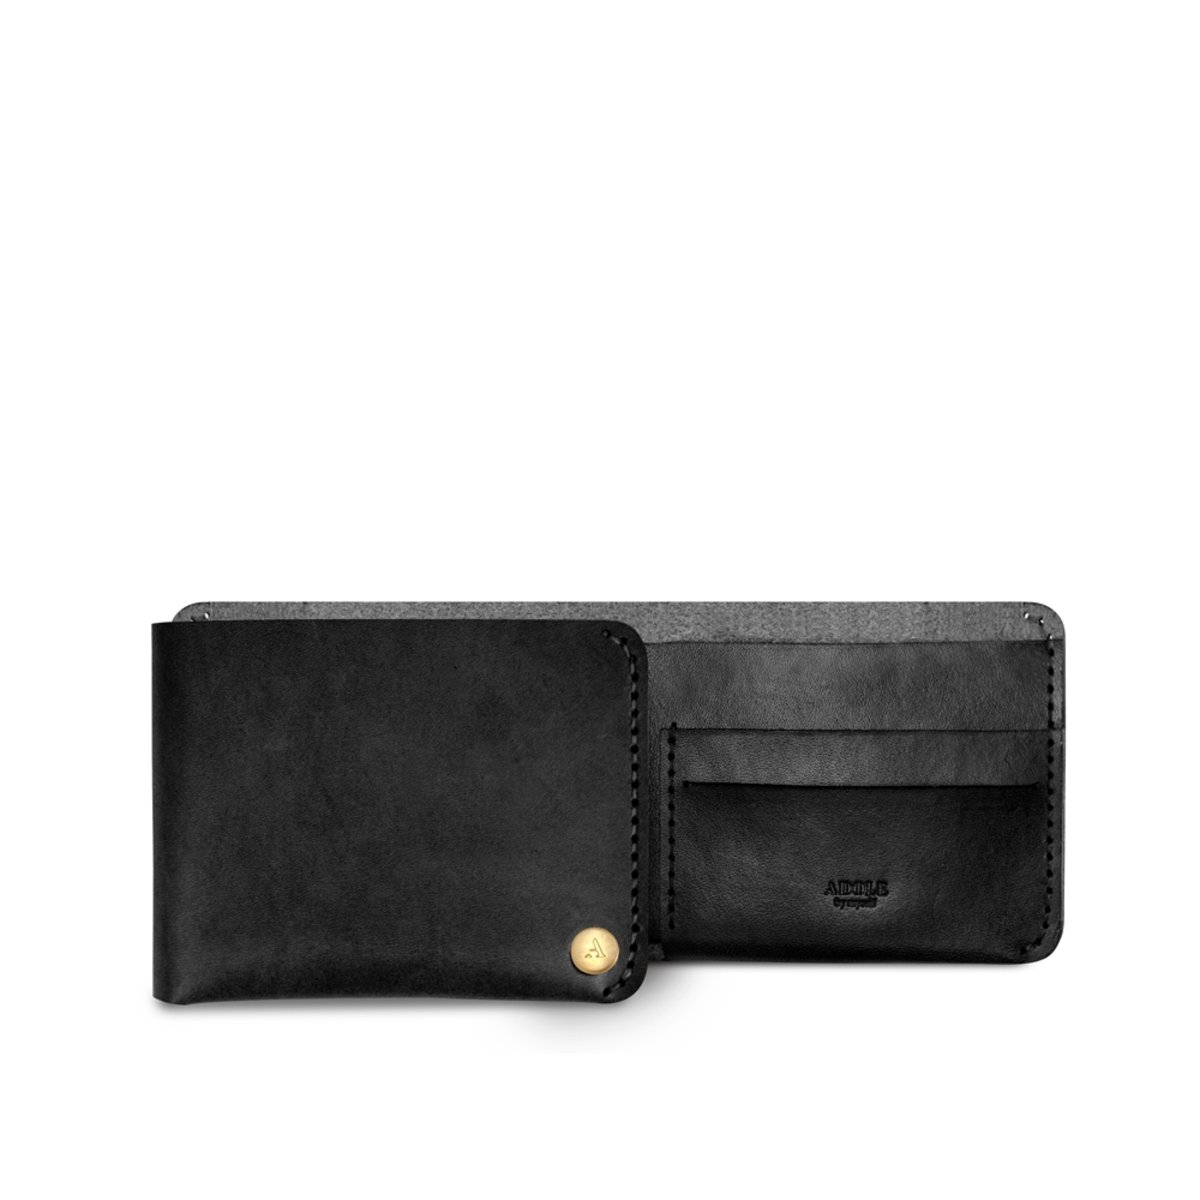 Leather Hand-made DIY kit - Wallet/Purse - Black